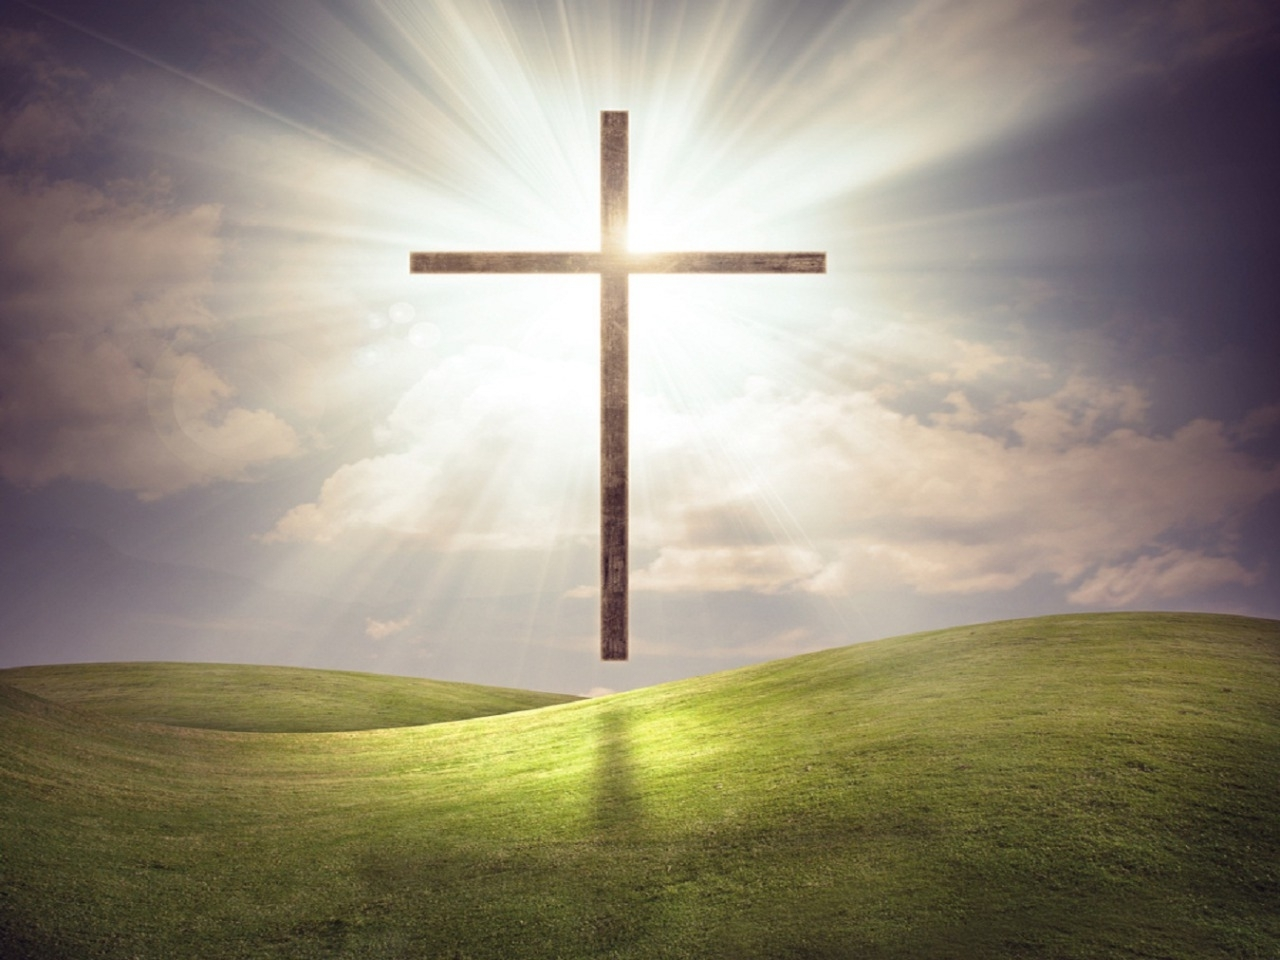 holy cross wallpaper and background image   1280x960   id:388426